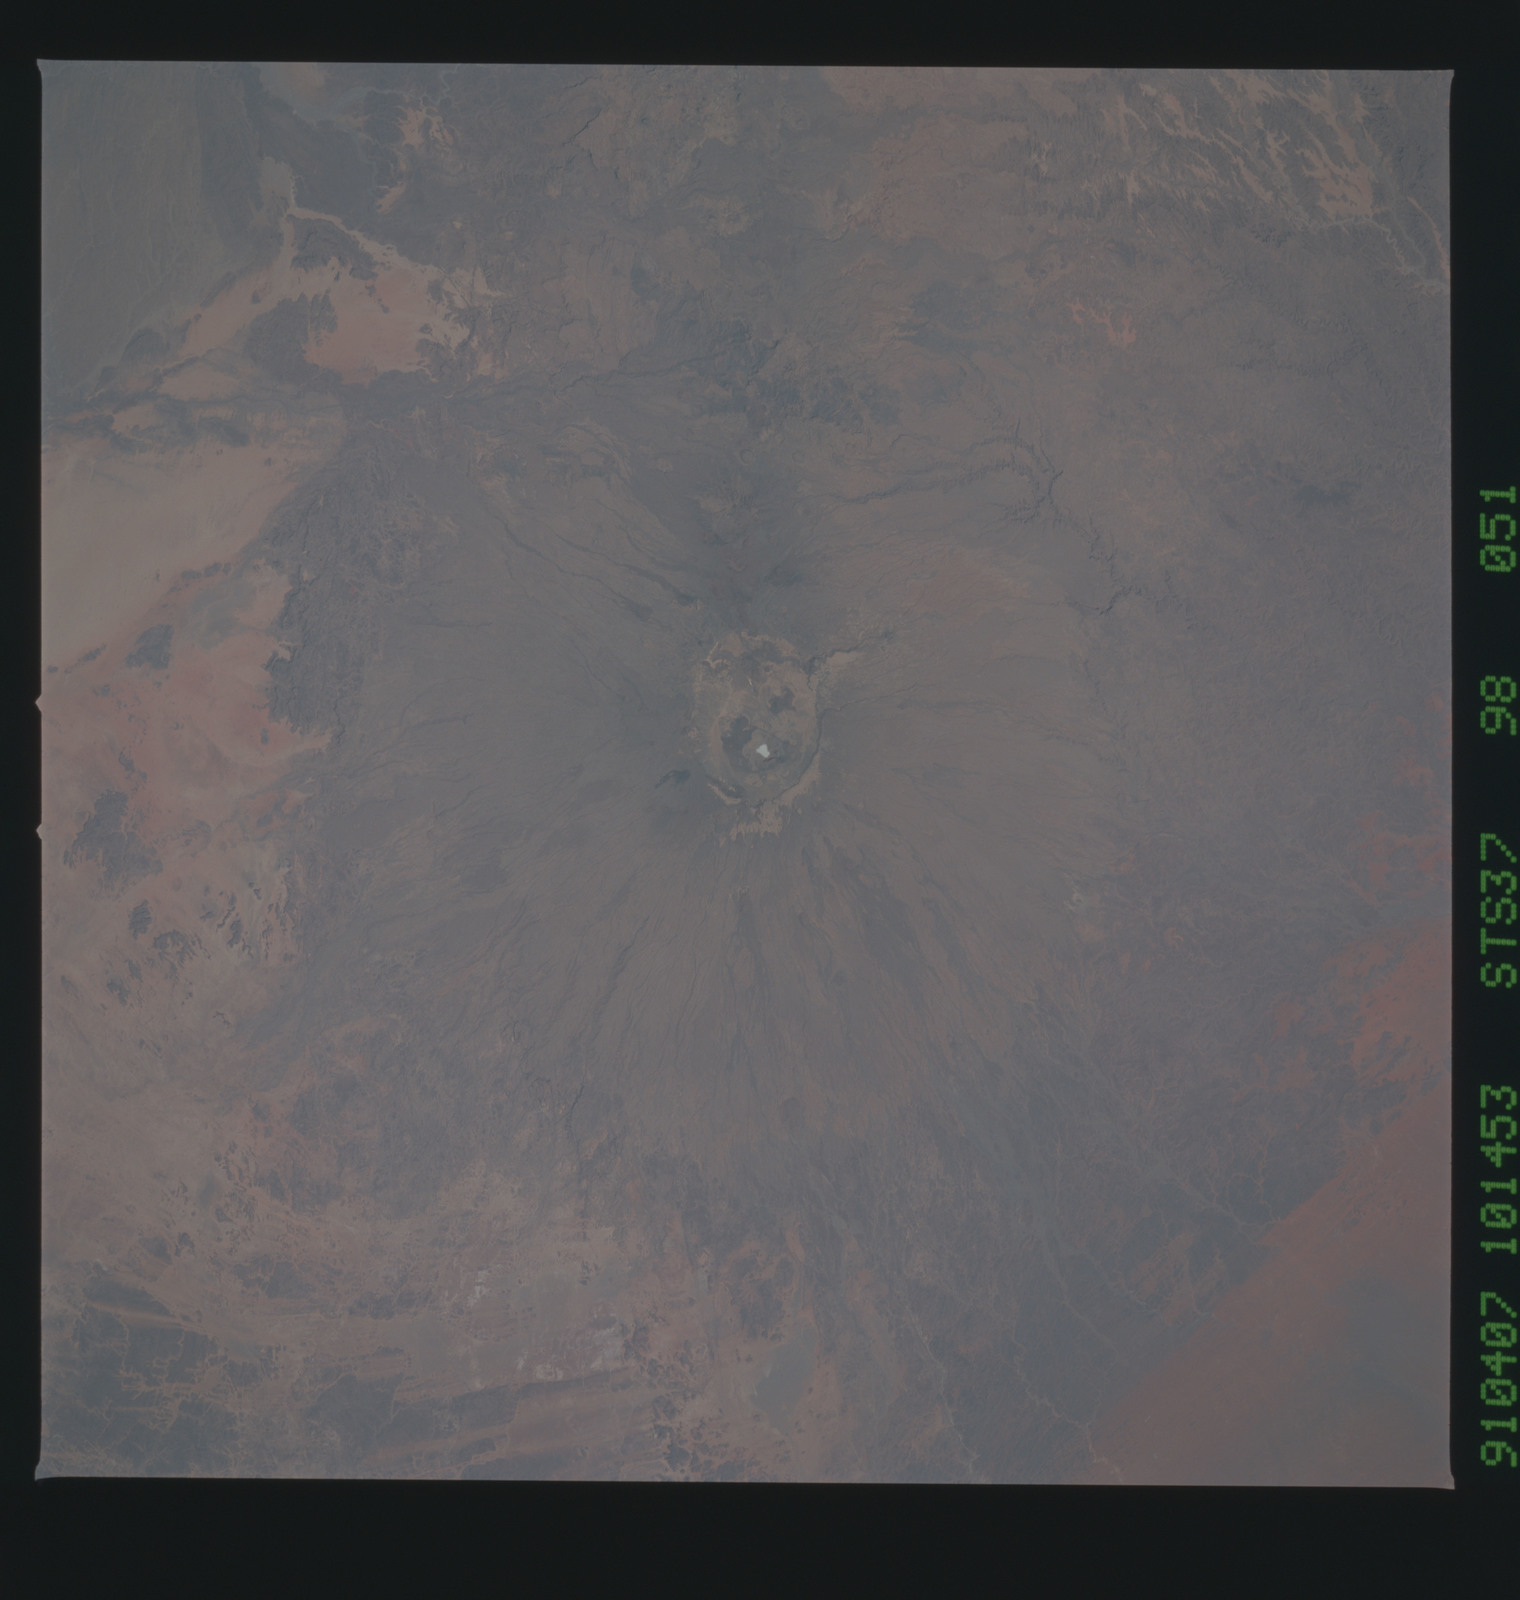 S37-98-051 - STS-037 - Earth observations taken from OV-104 during STS-37 mission